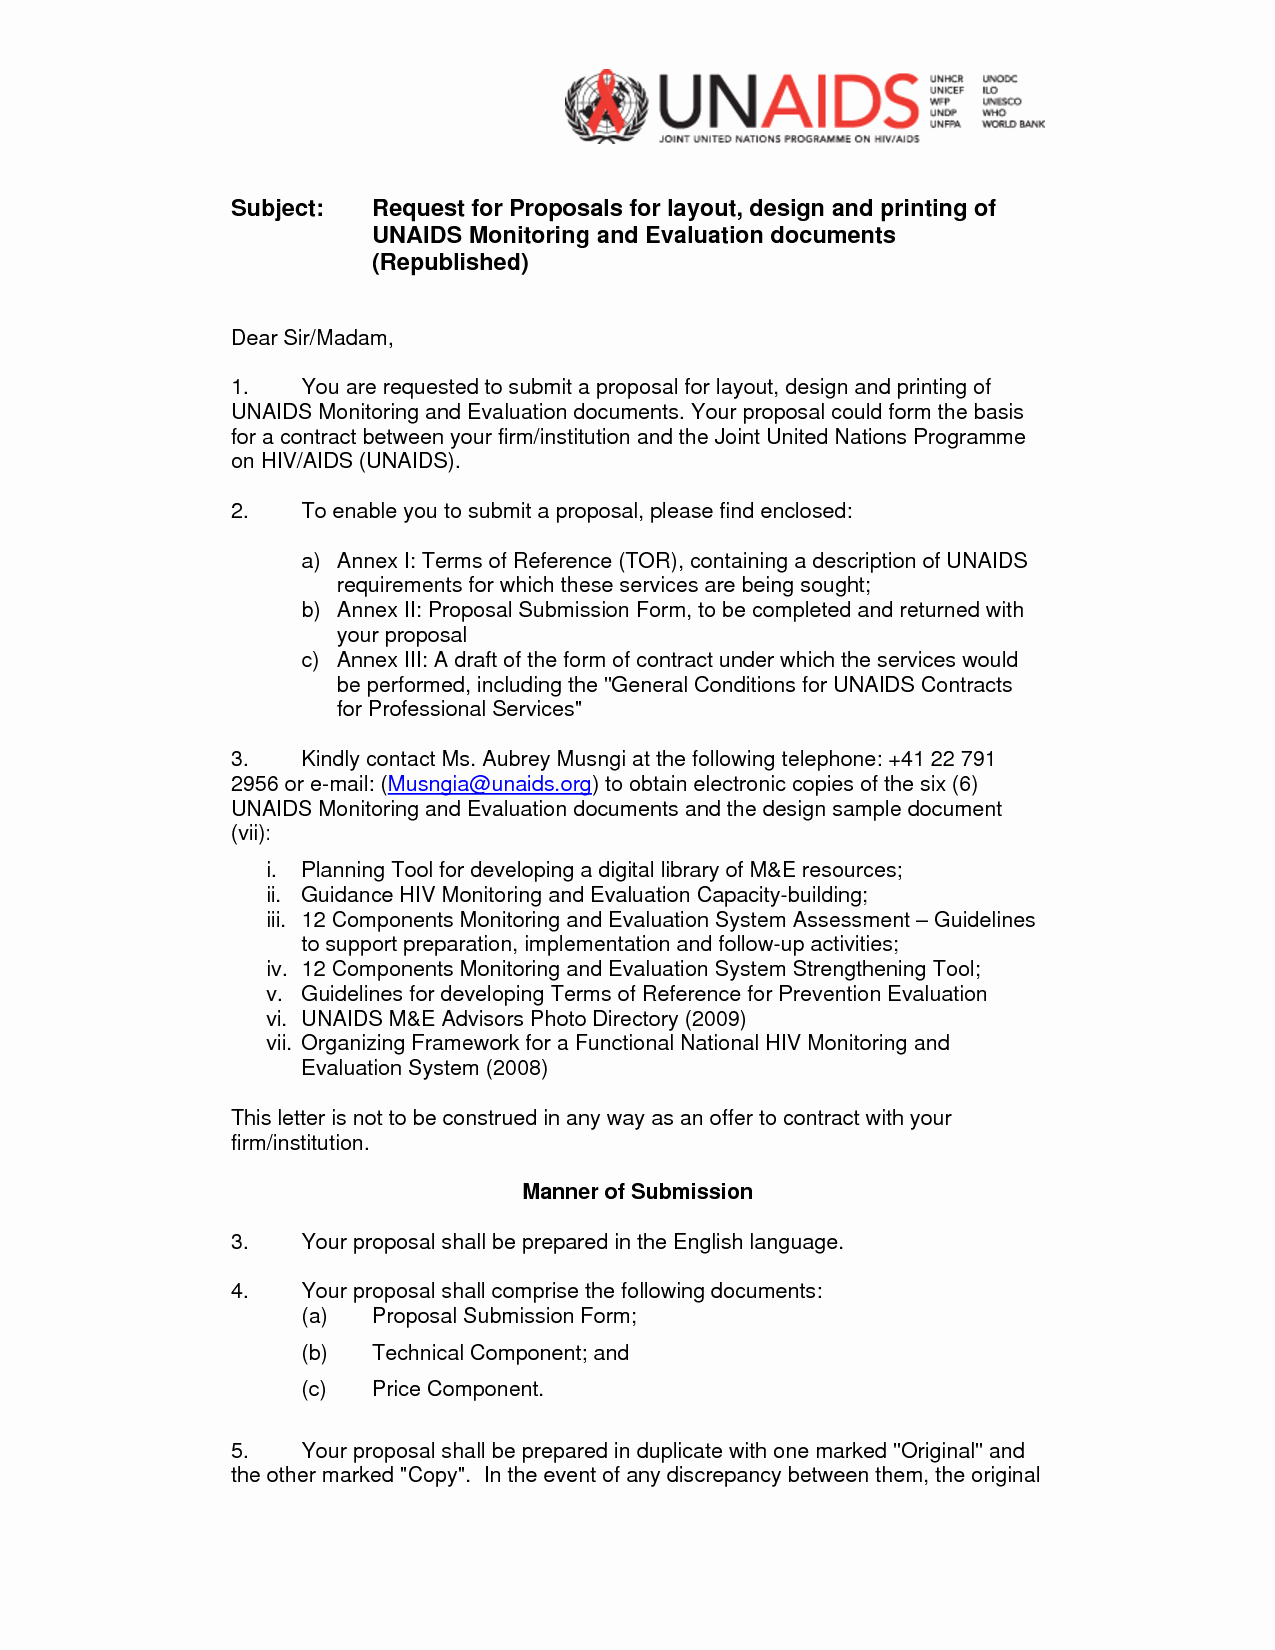 Rfp Proposal Example Best Of Rfp Cover Letter